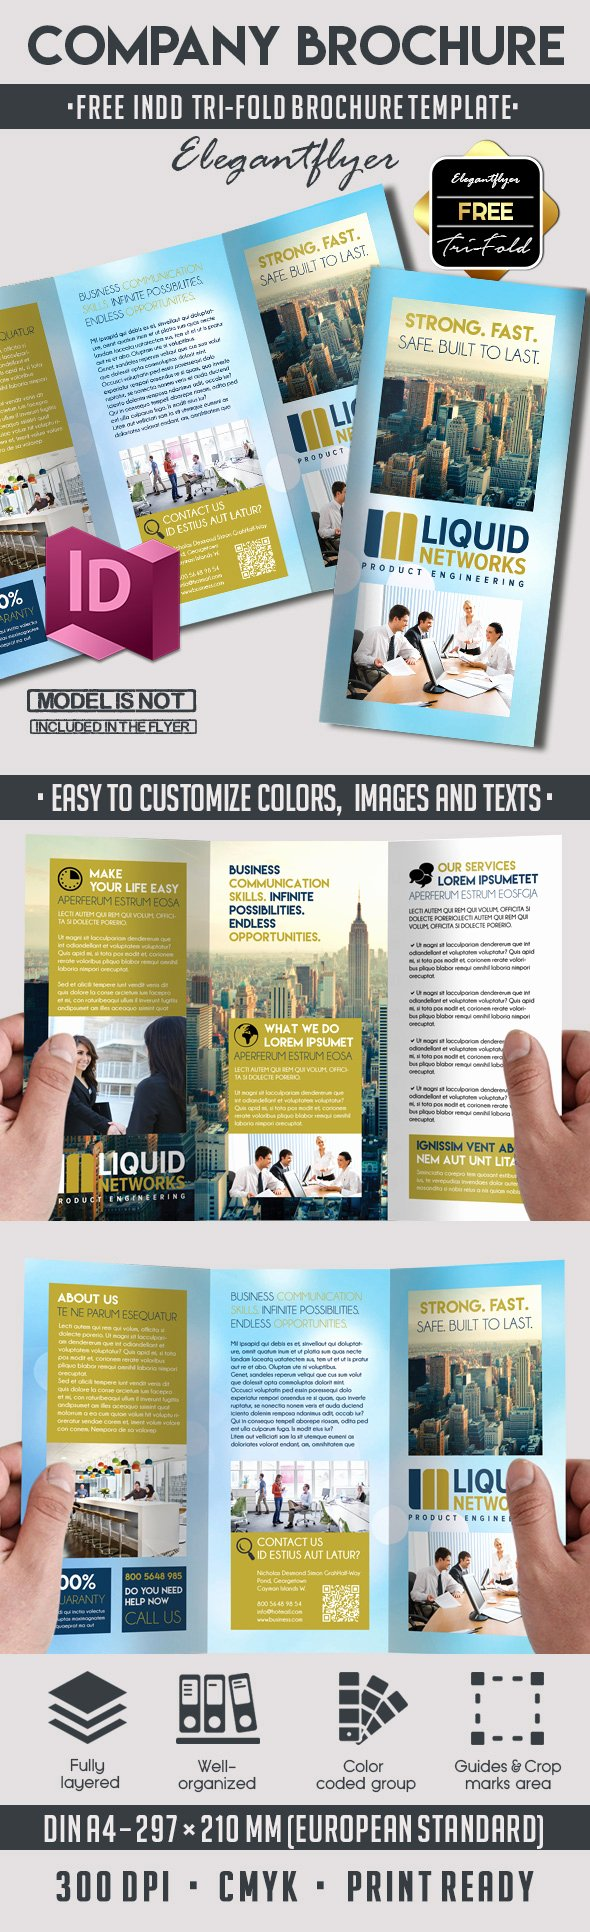 5 Powerful Free Adobe Indesign Brochures Templates – by